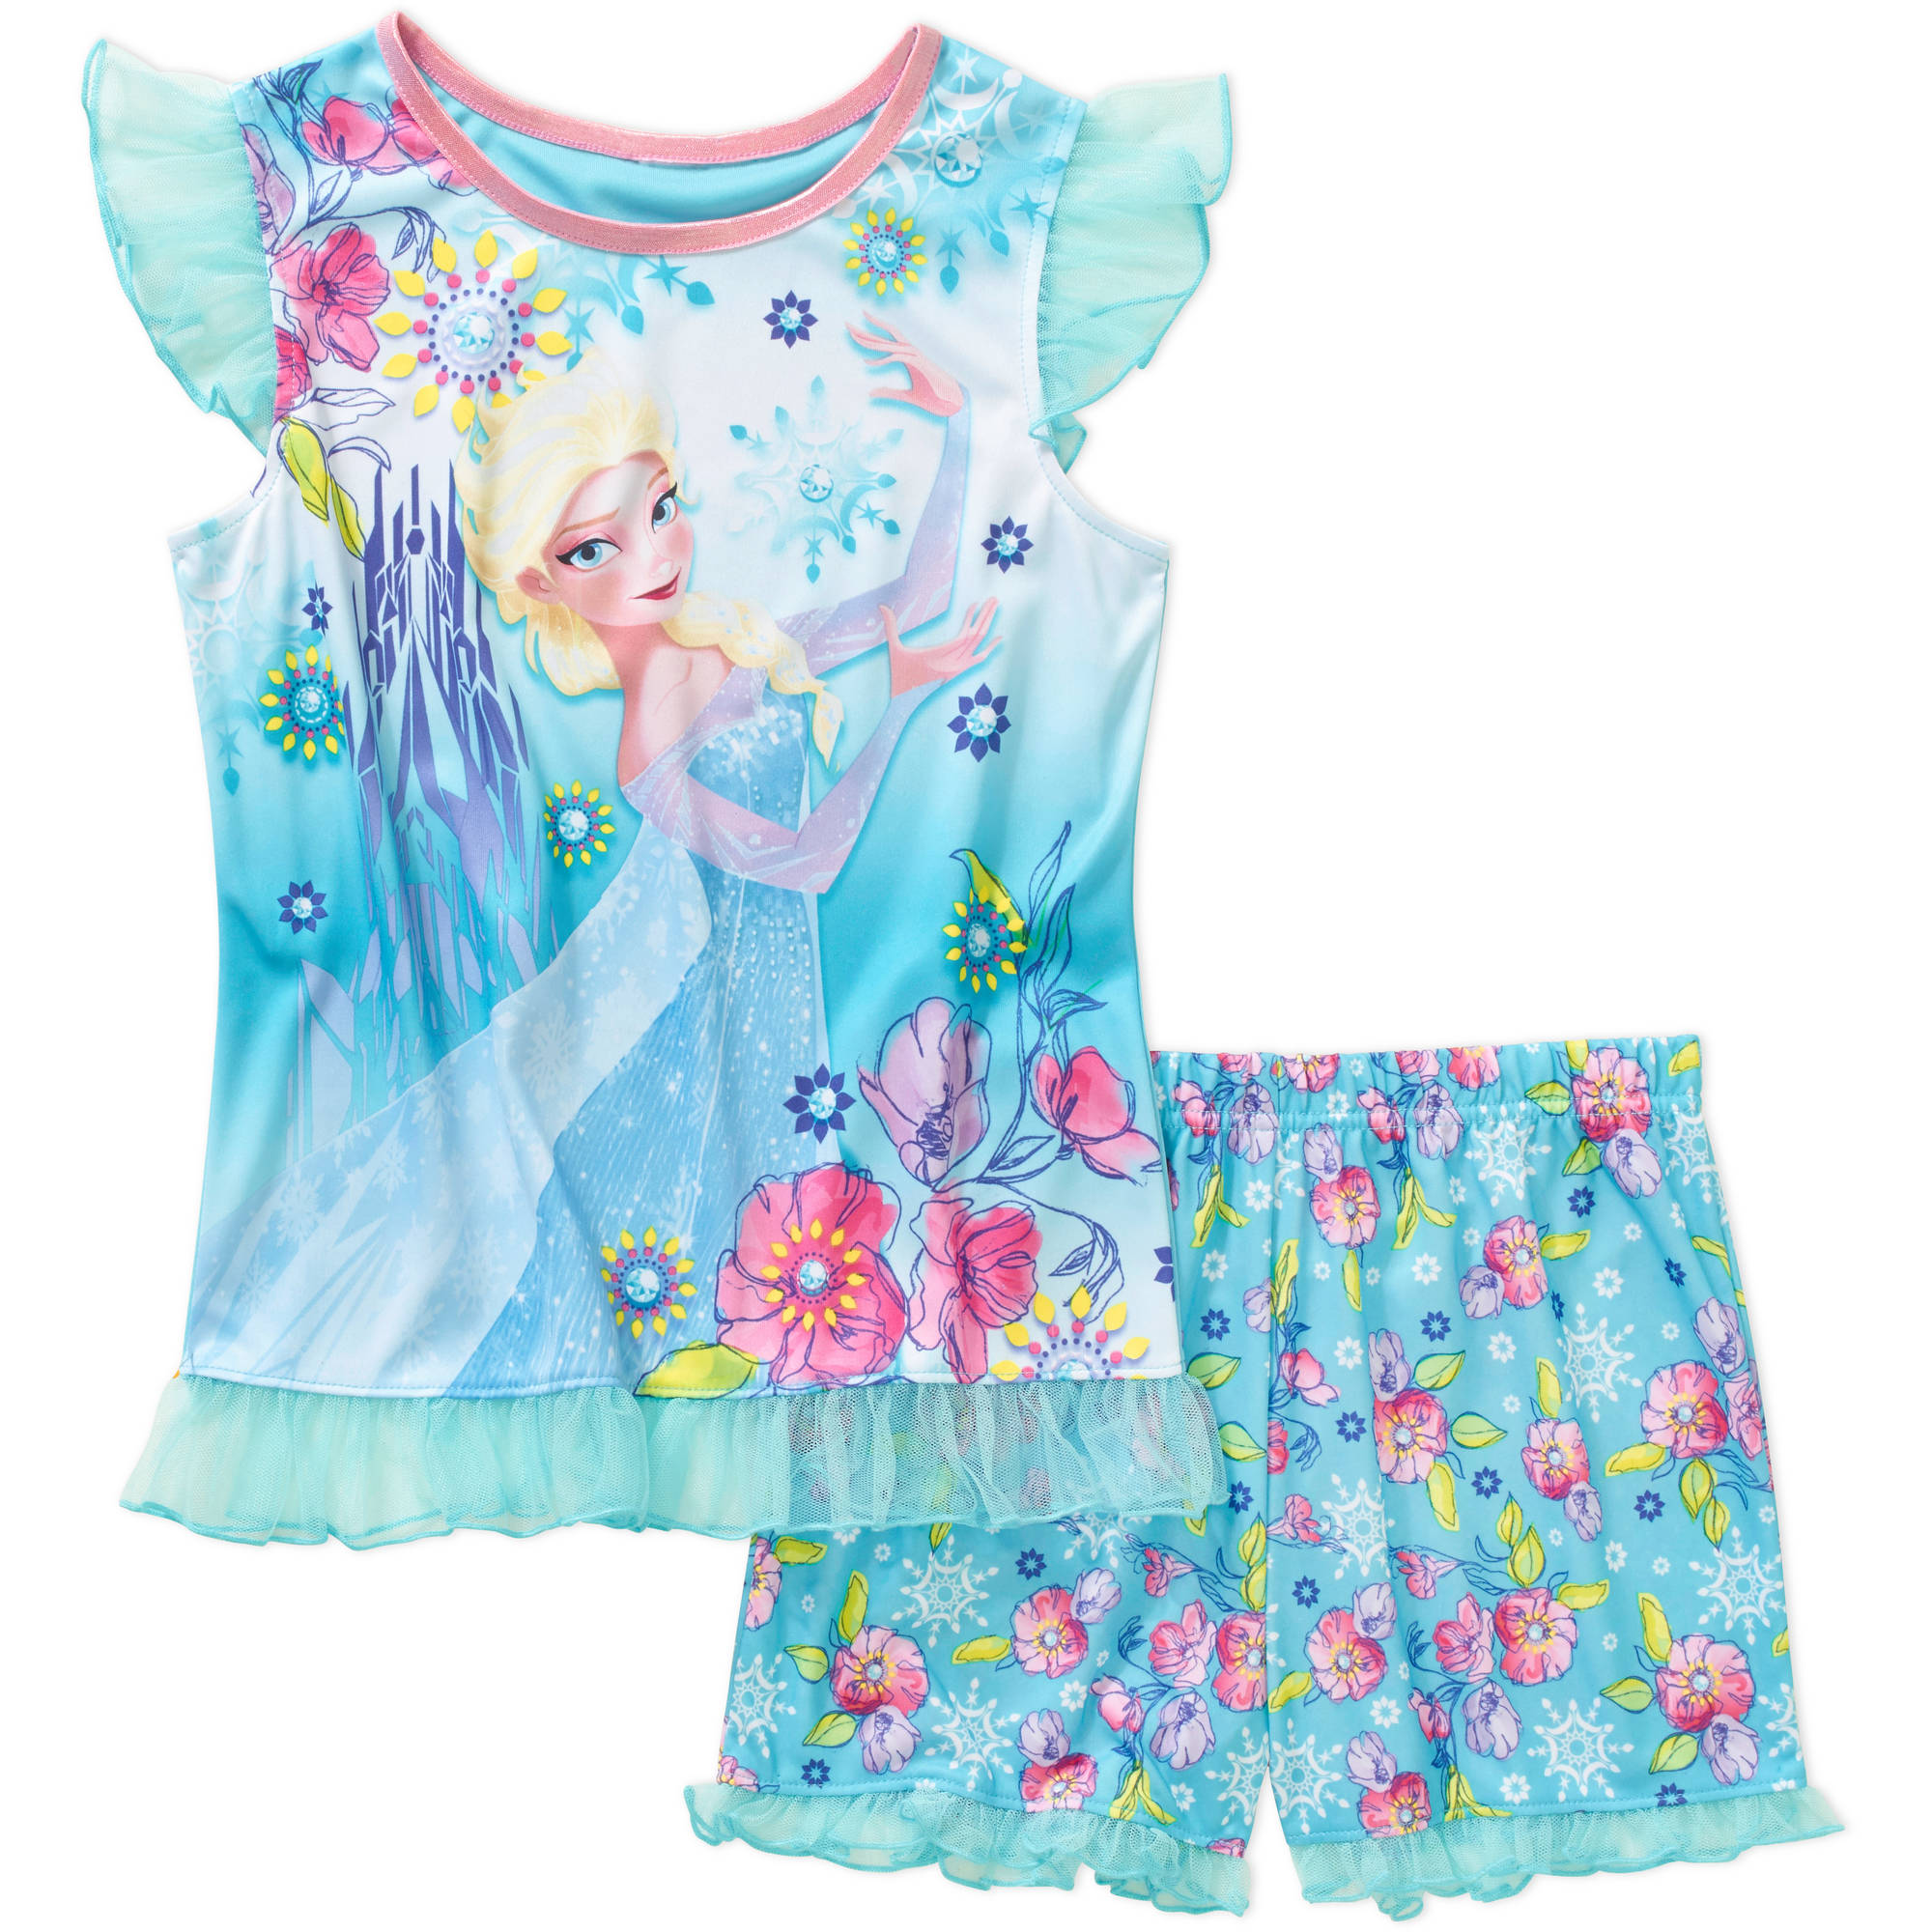 Disney's Frozen Tank Sleep Top and Shorts 2 Piece Pajma Set